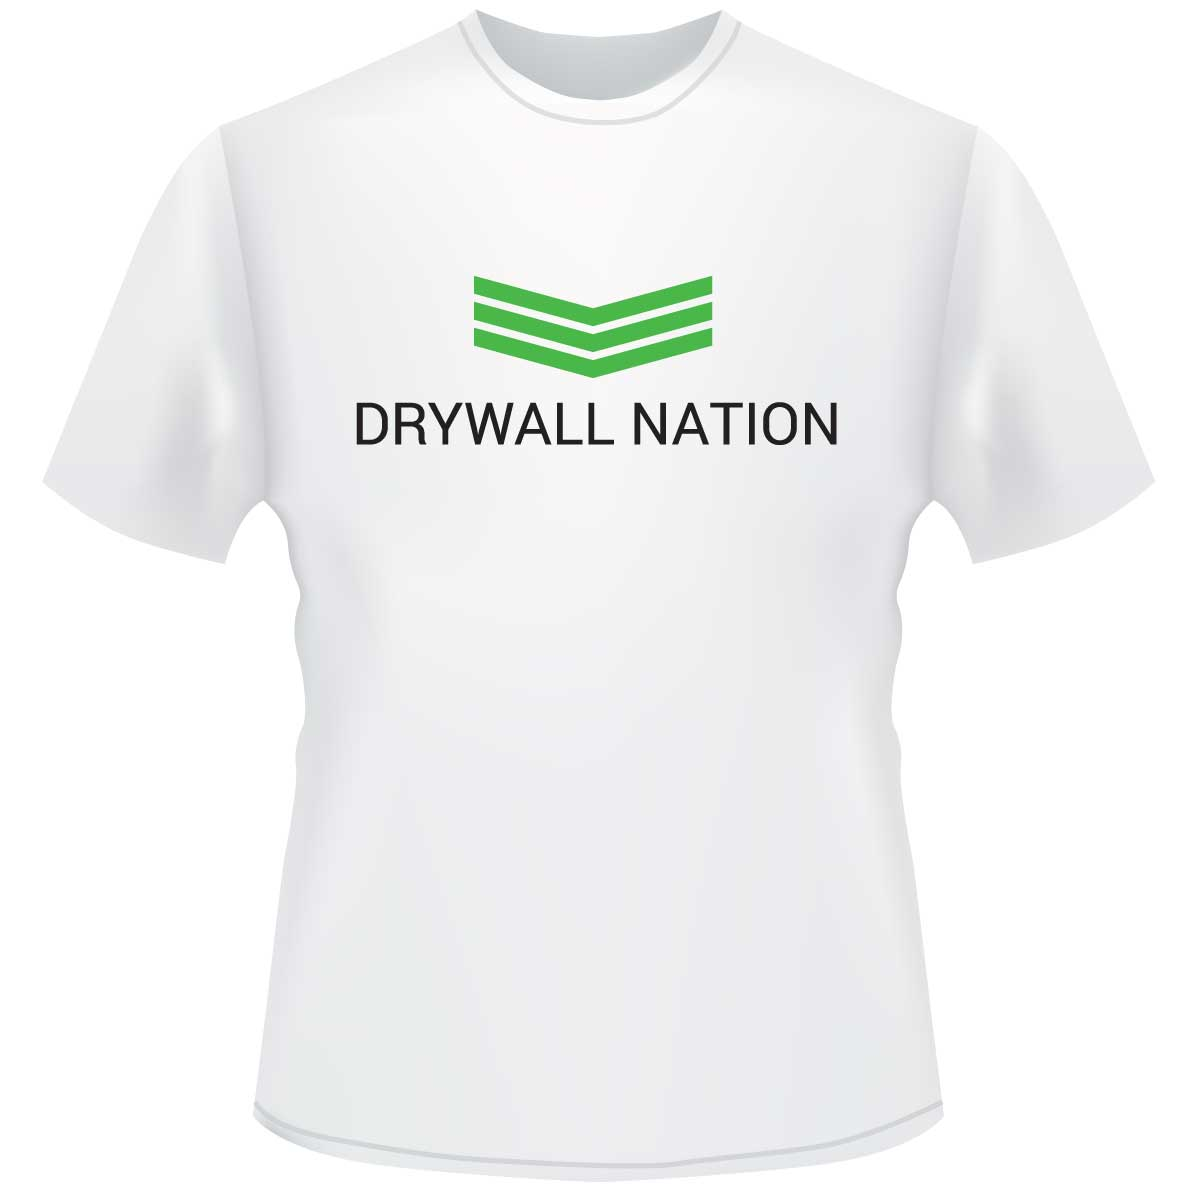 Drywall Nation Shirt - White